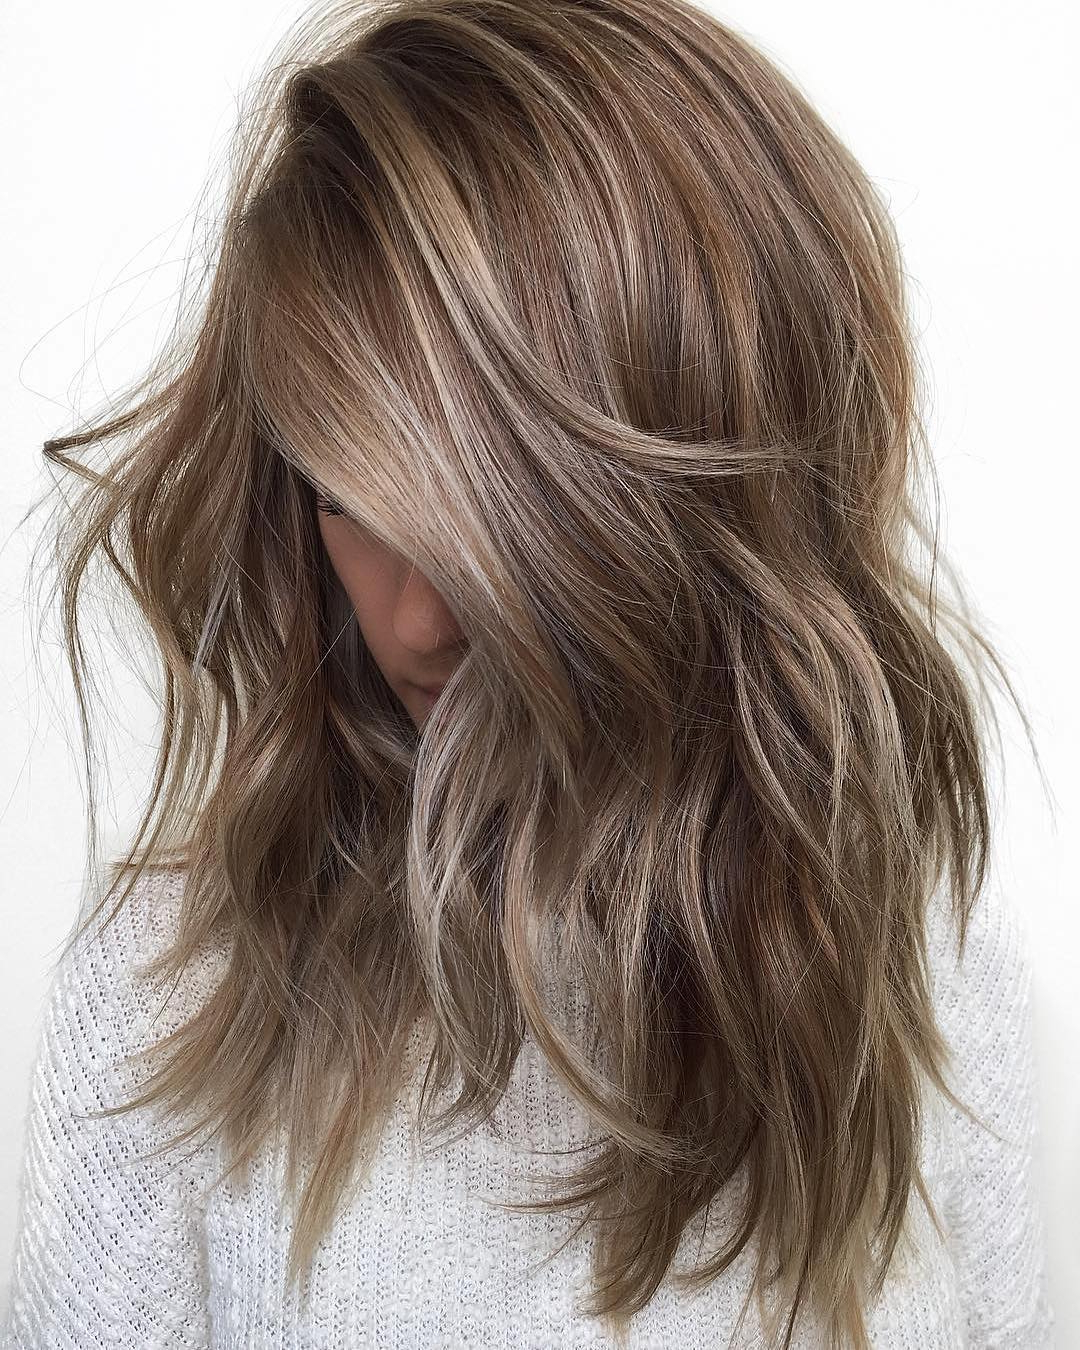 10 Medium Length Hair Color Ideas 2020 Pertaining To Favorite Medium Wavy Bronde Shag Haircuts (Gallery 13 of 20)